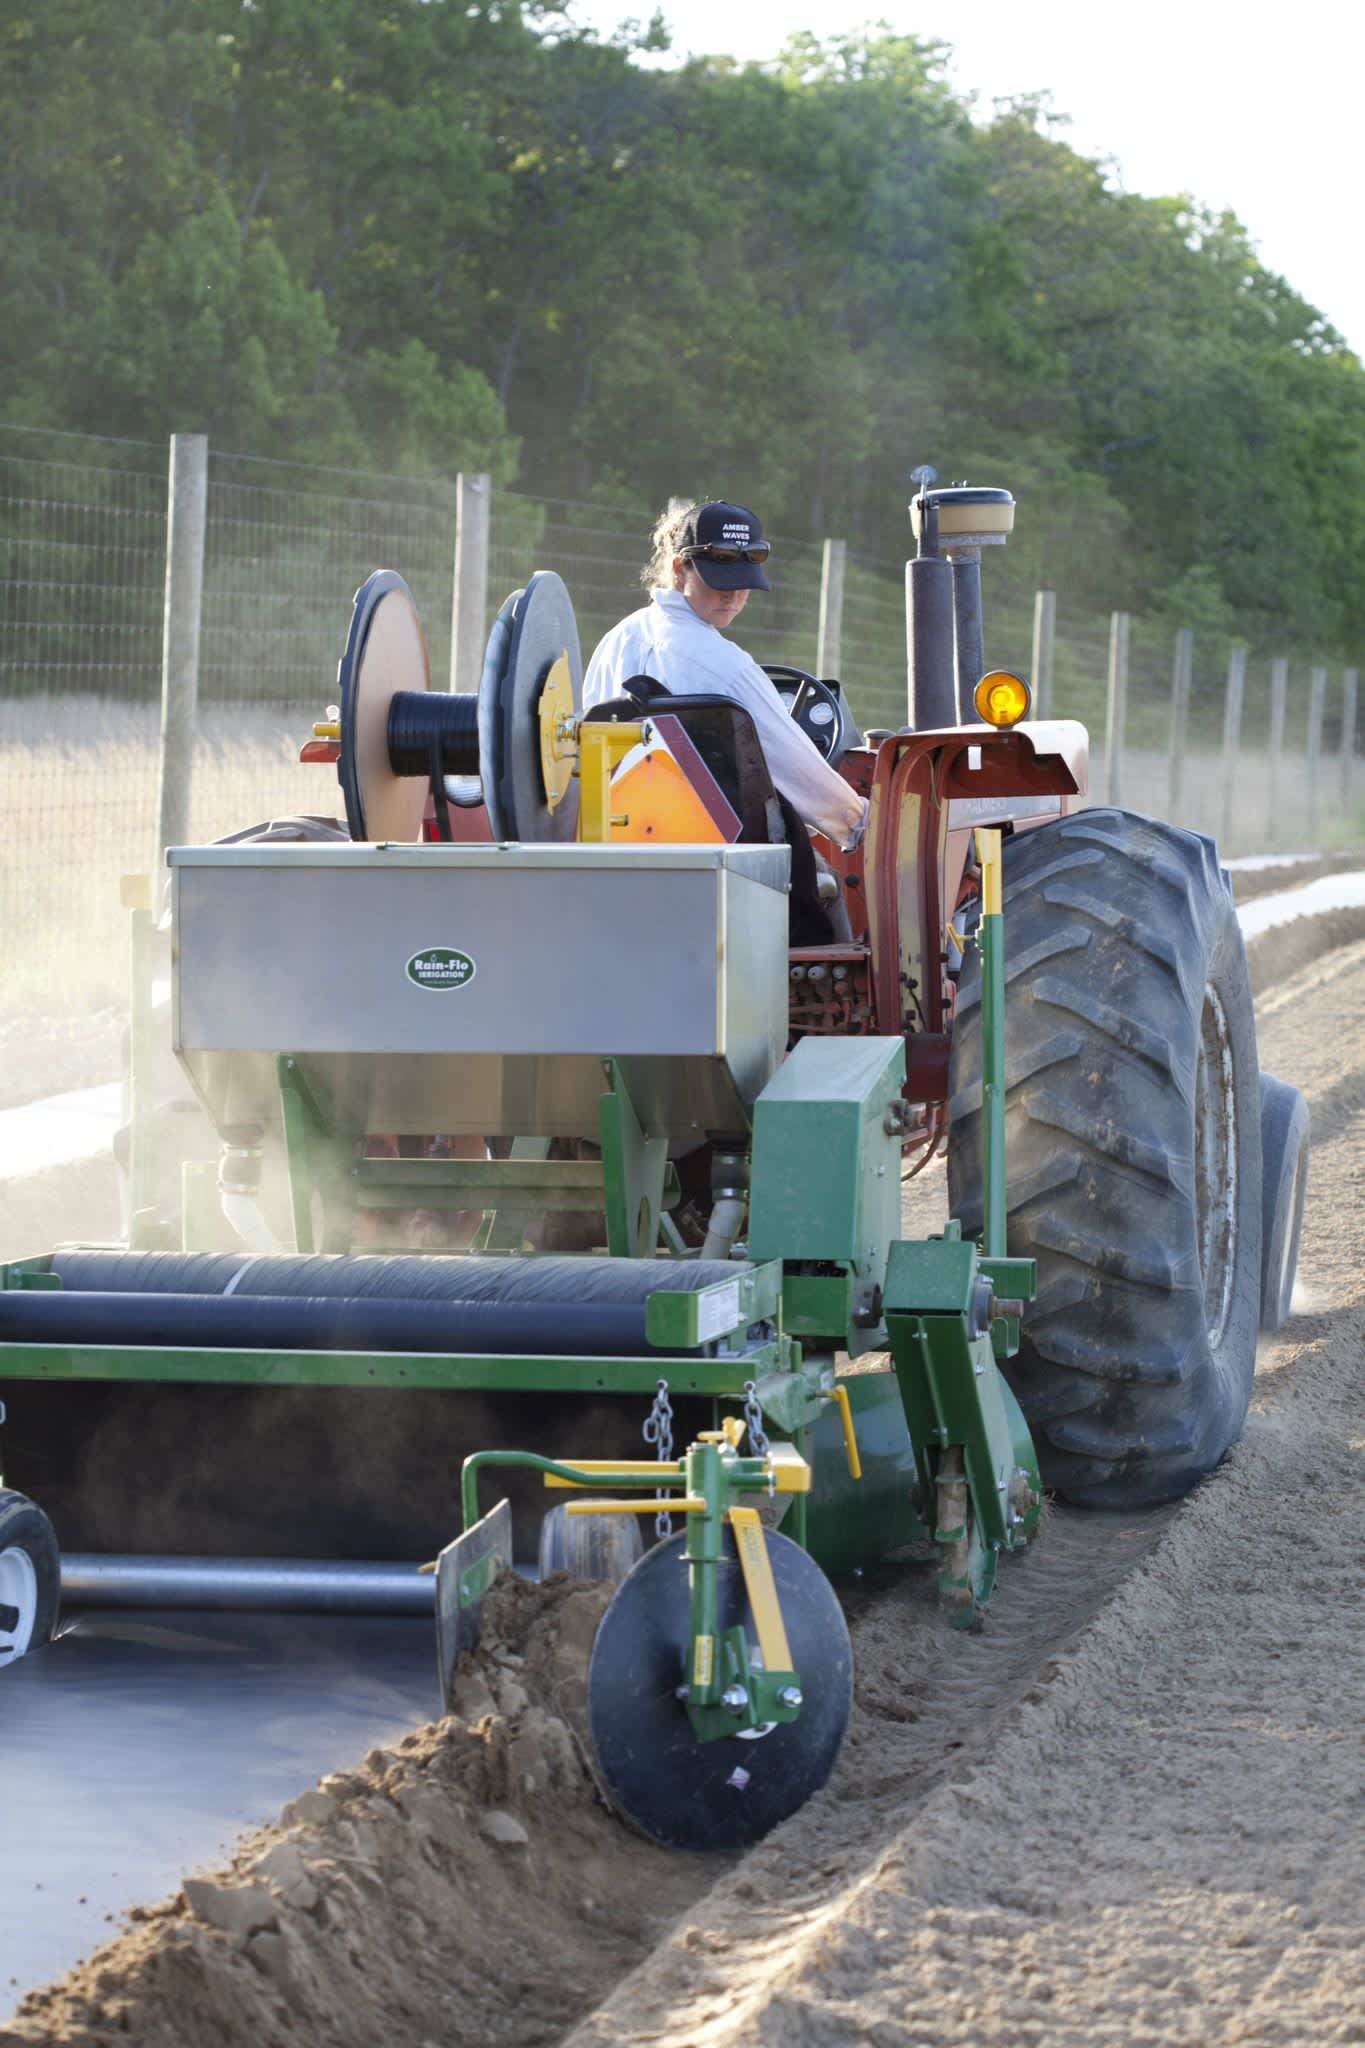 A Day in the Life of a Farm: gallery image 29